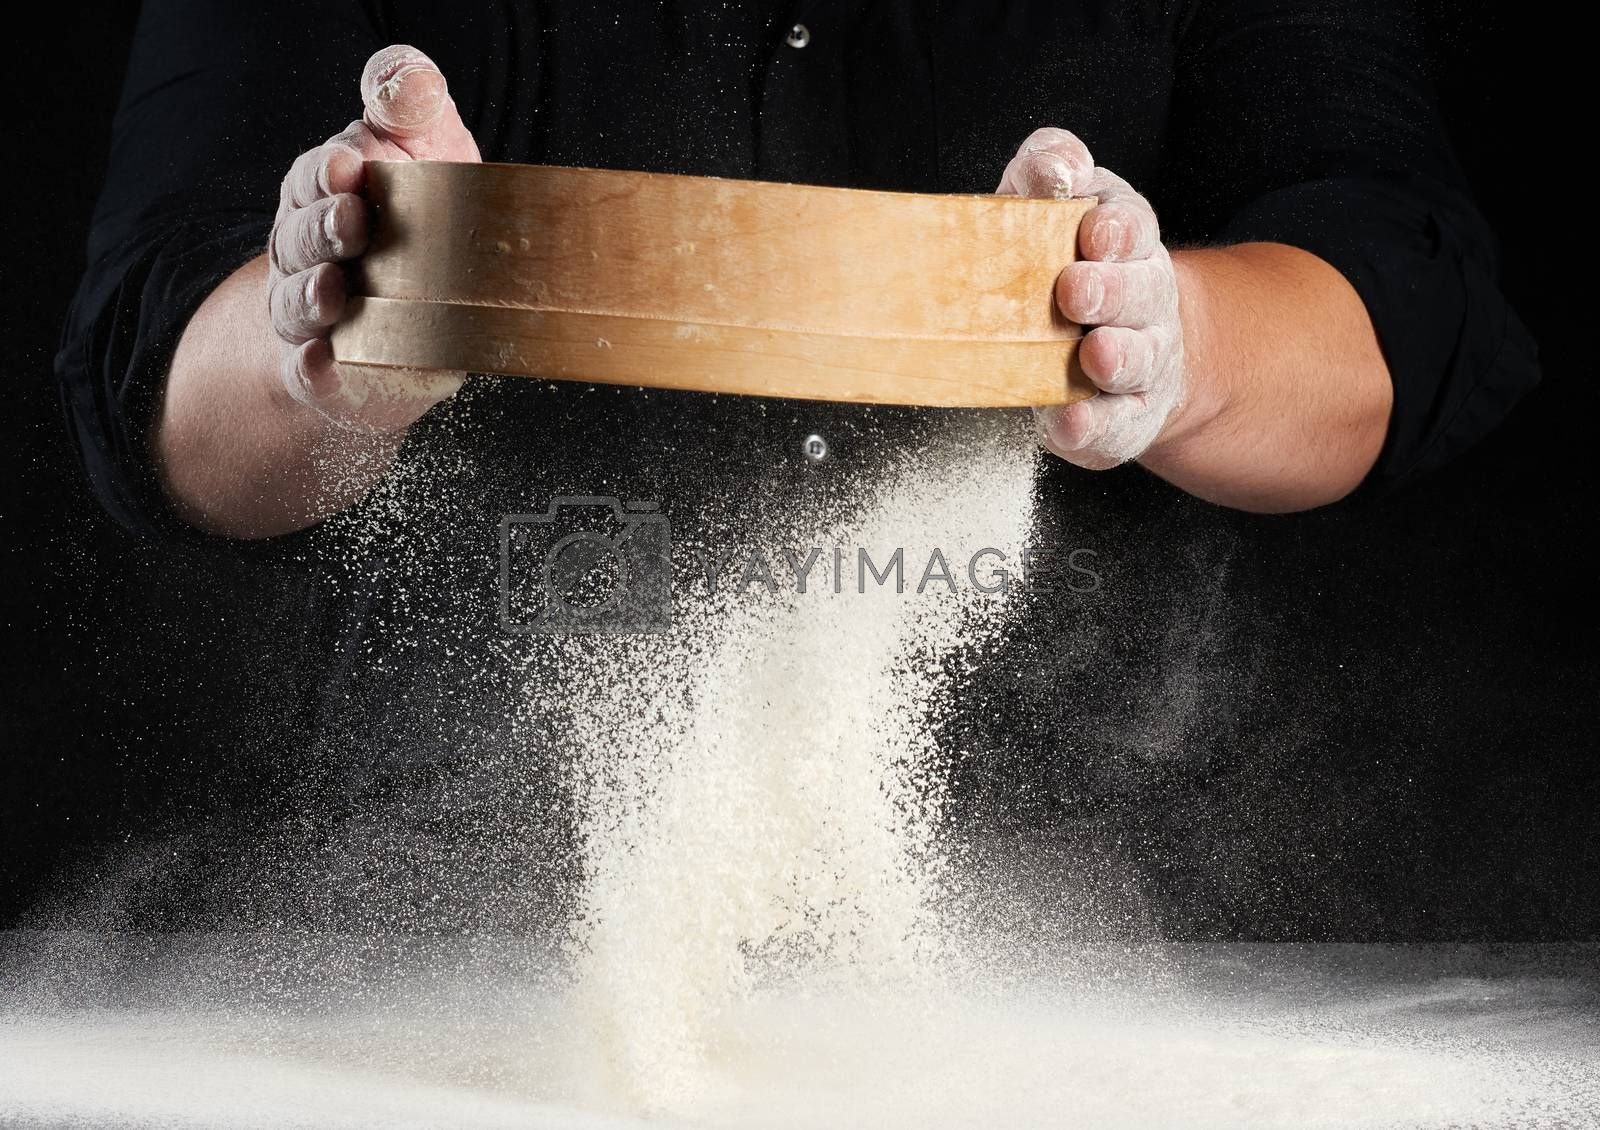 chef a man in a black uniform holds a round wooden sieve in his hands and sifts white wheat flour on a black background, particles fly in different directions